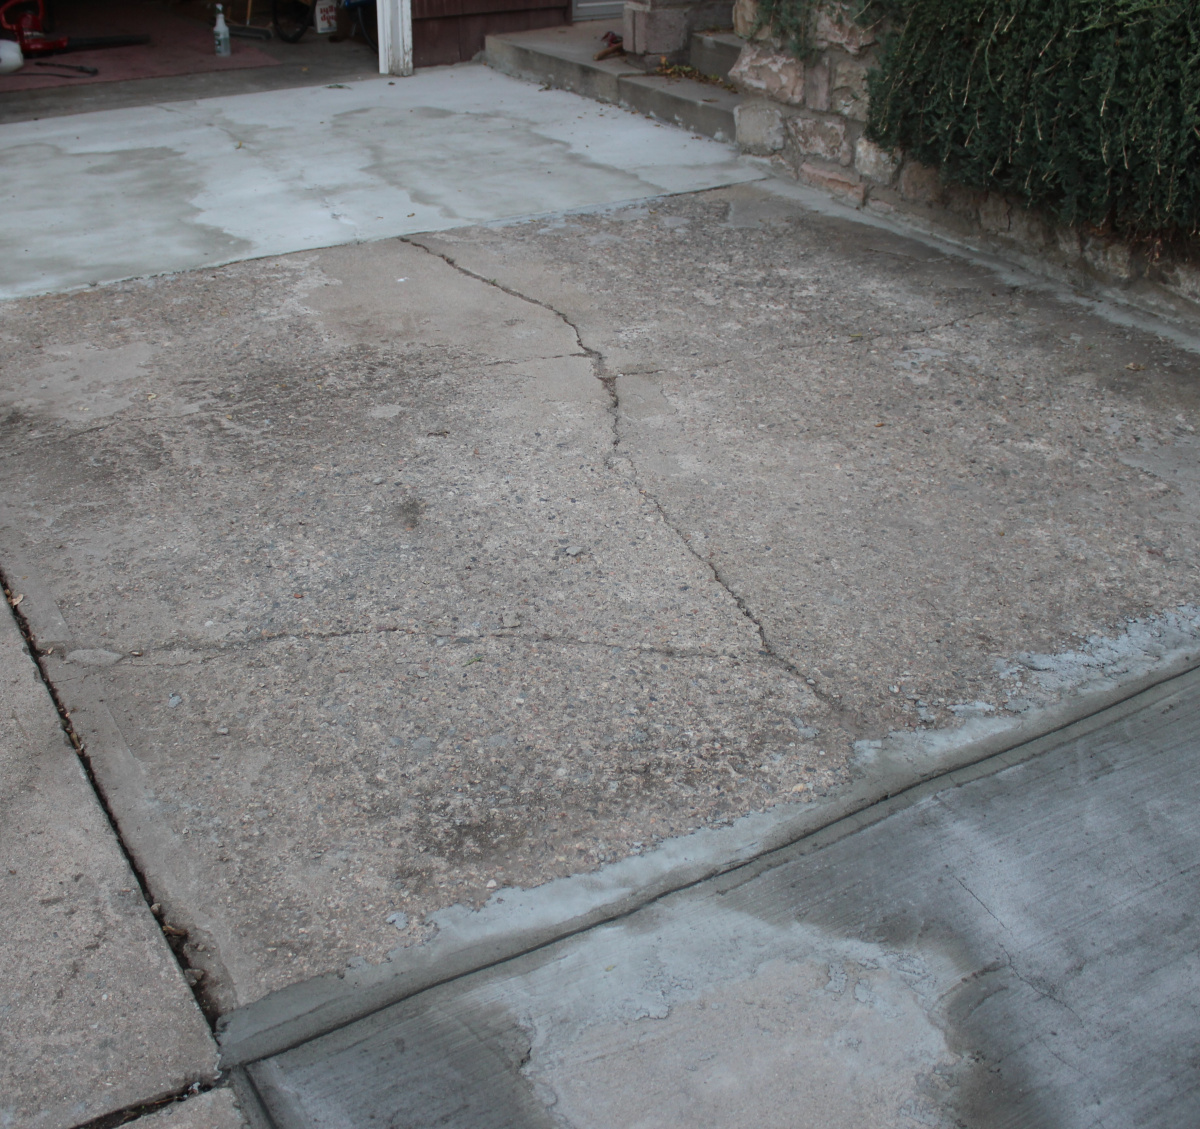 Have a bad concrete pour, need to make a decision-img_4369.jpg